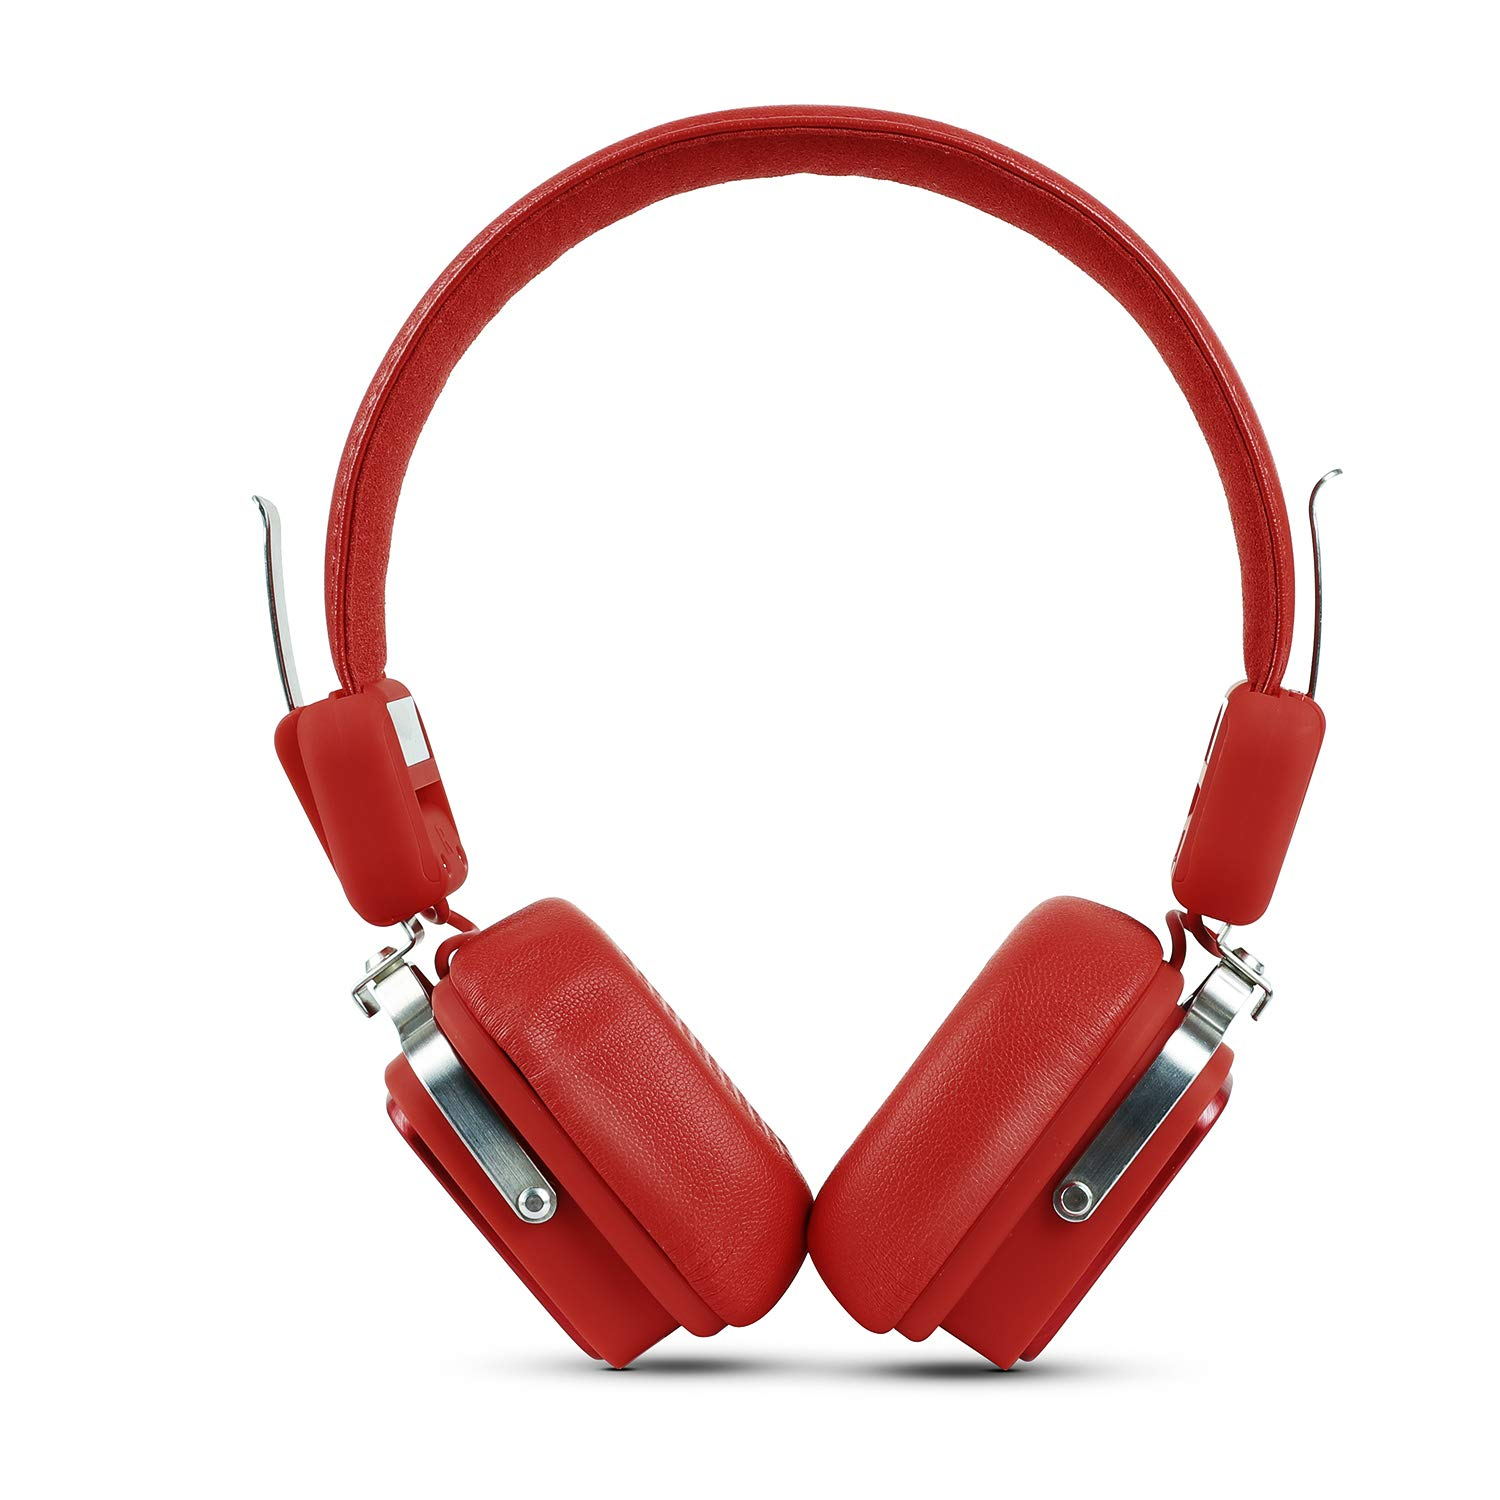 boAt Rockerz 600 Kings XI Punjab Edition Bluetooth Headphone with Luxurious Sound, Plush Earcushions, Foldable Ergonomic Design and Up to 8H Playtime (Lion Red)